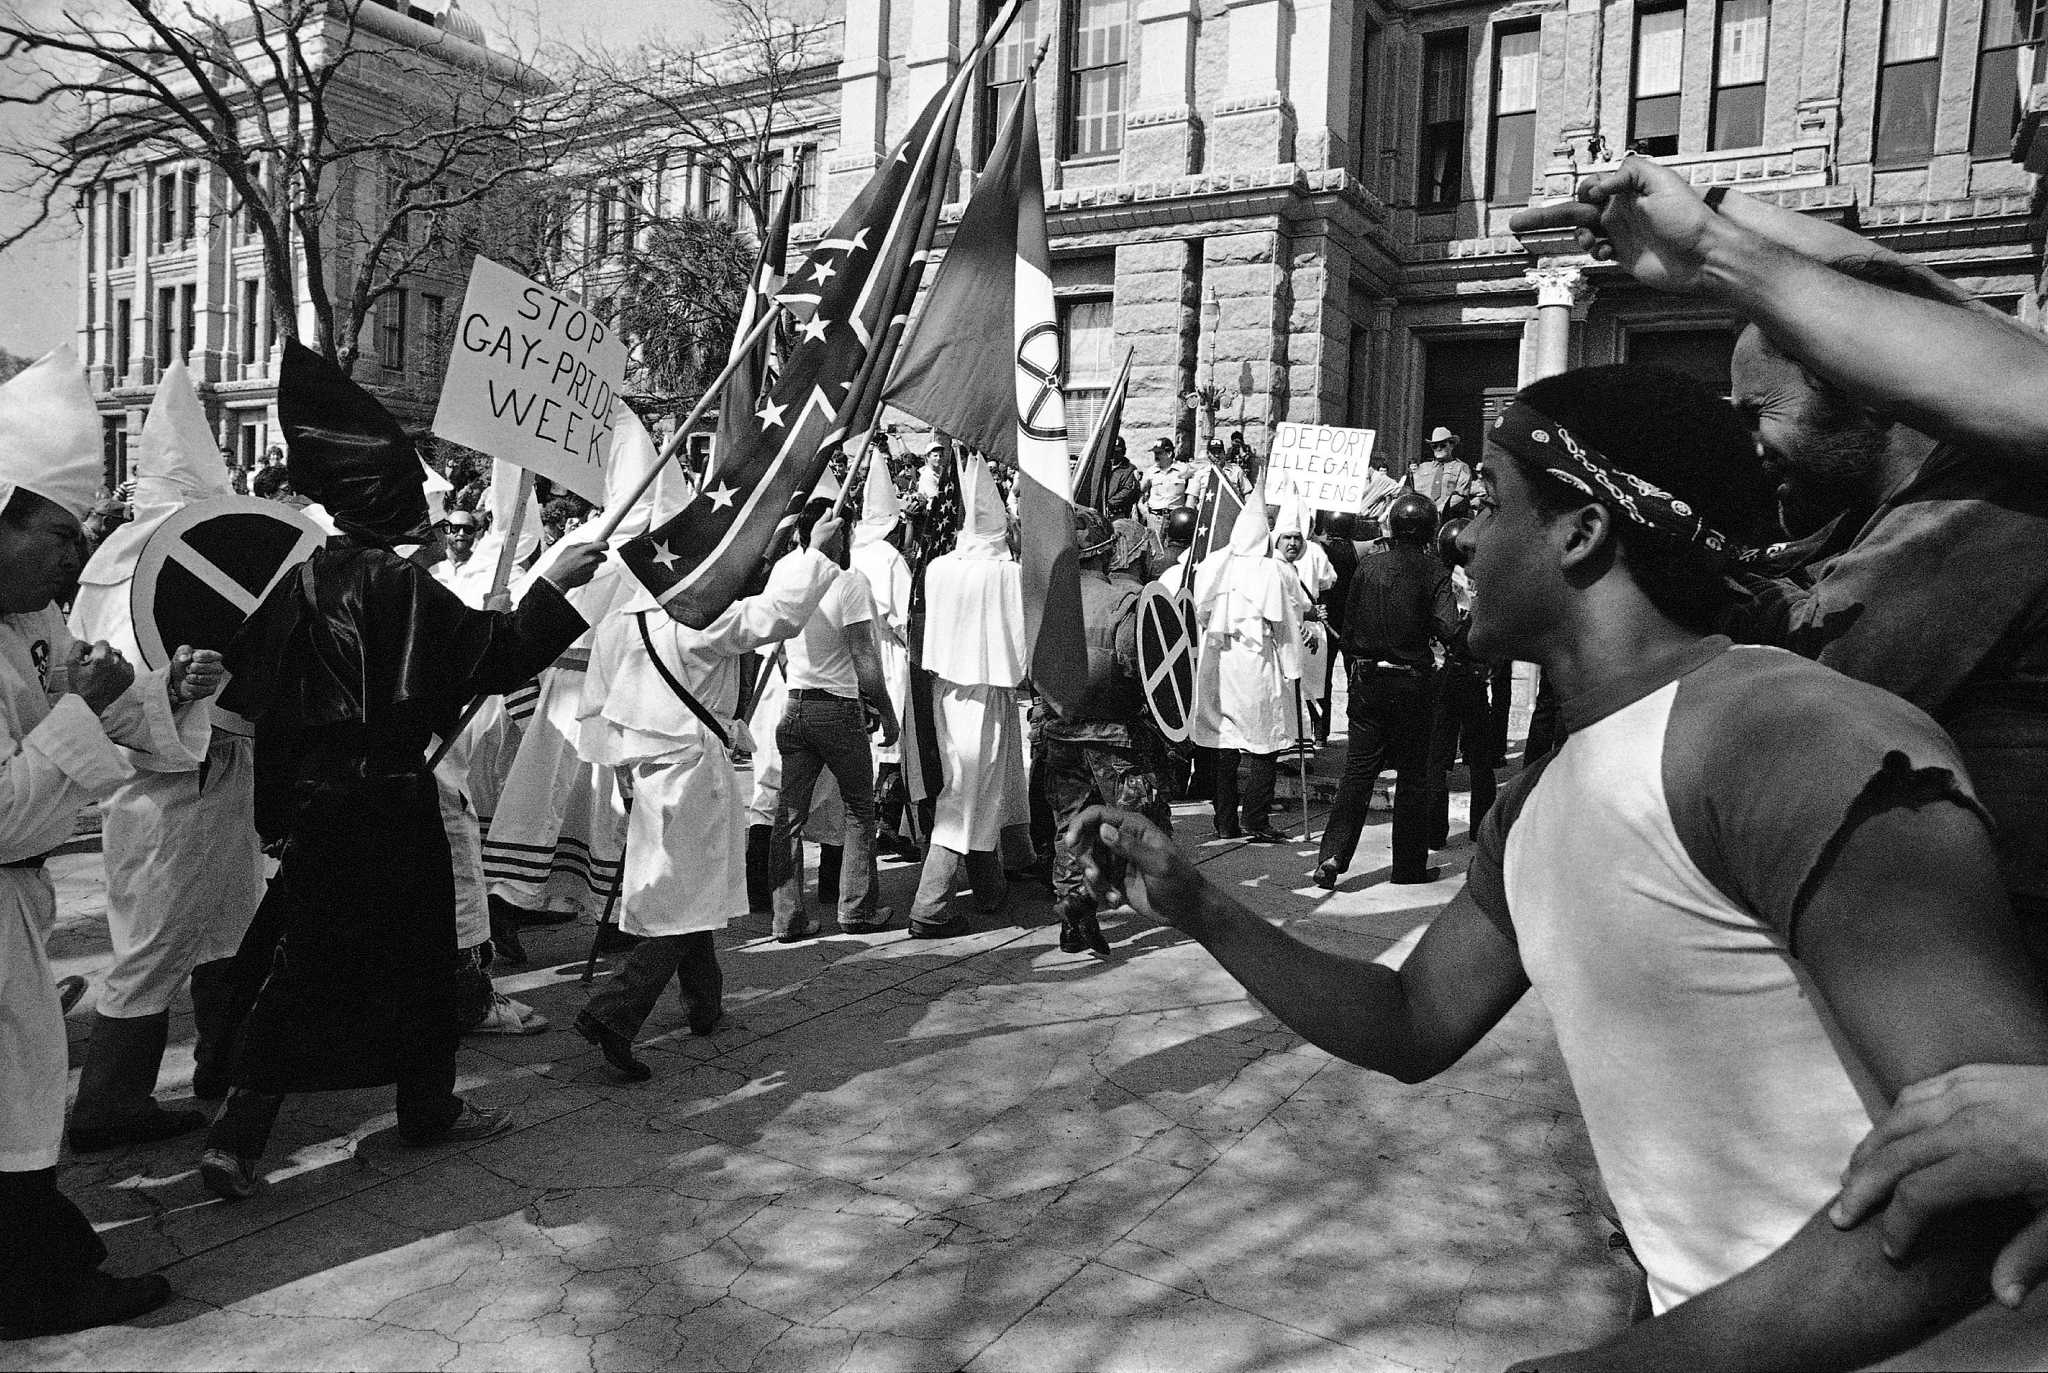 Voting Rights Act 50 Years Old Today